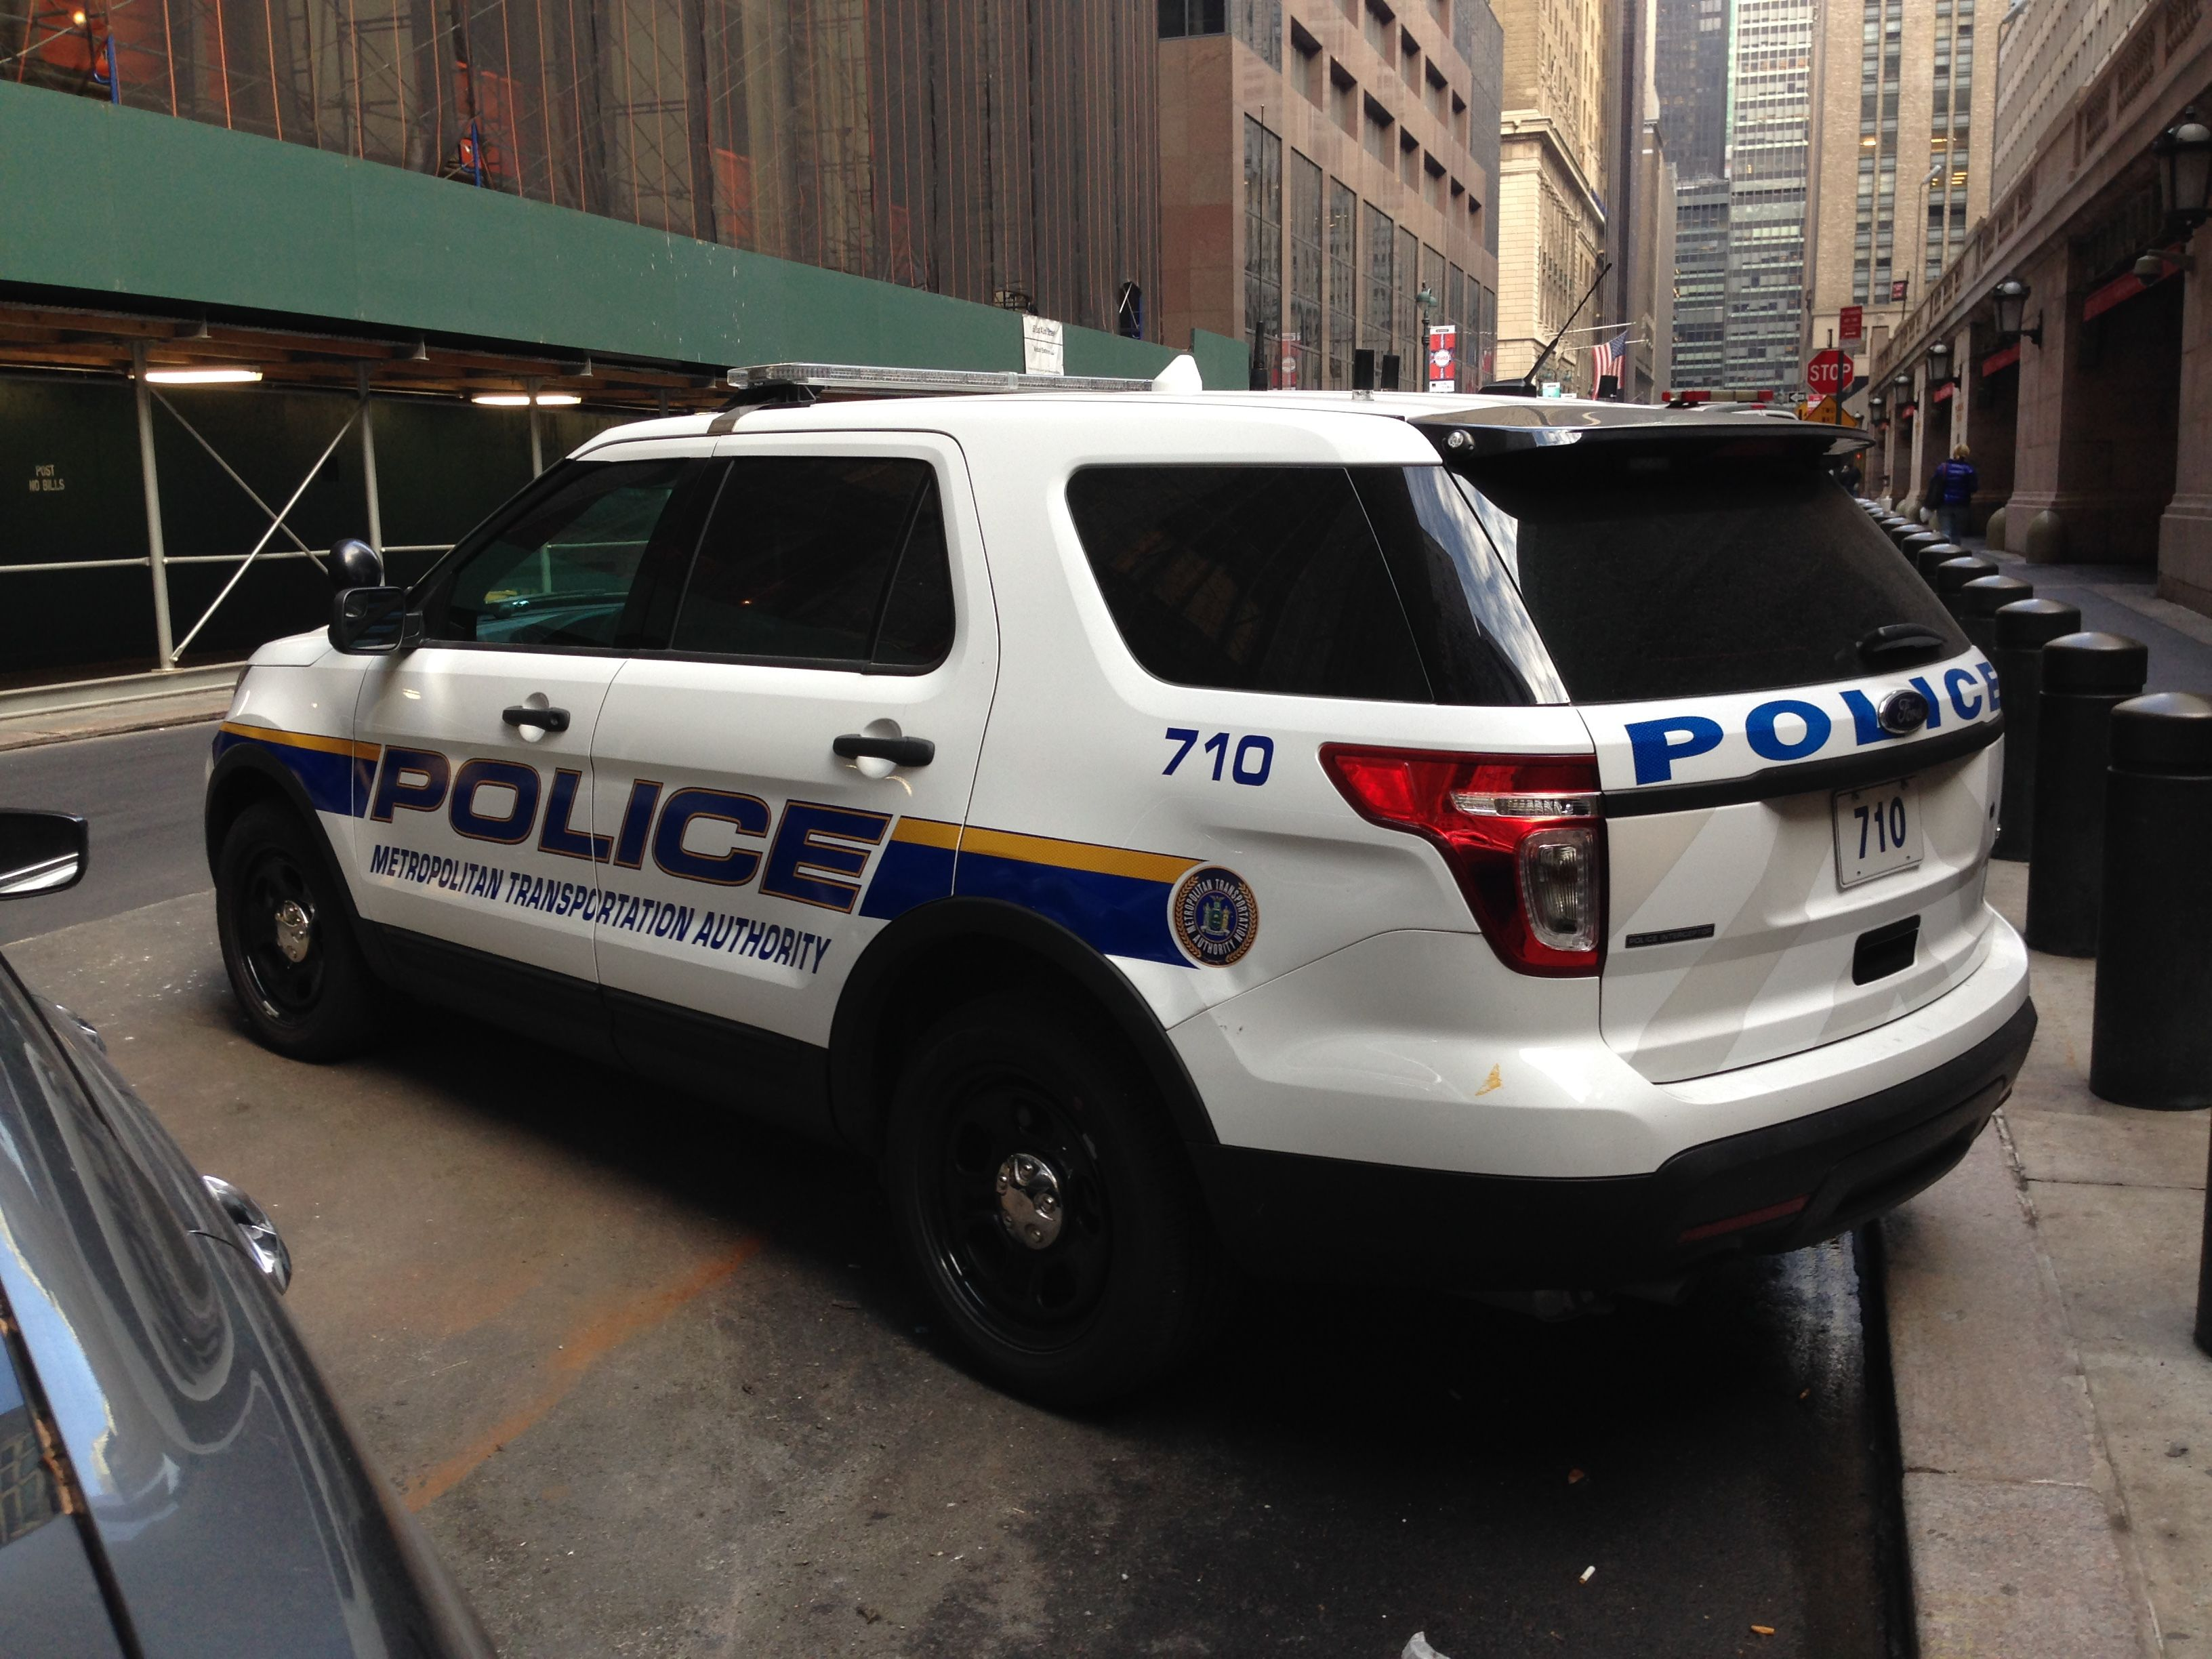 Mta Police Department Ford Interceptor Suv Nyc Ford Police